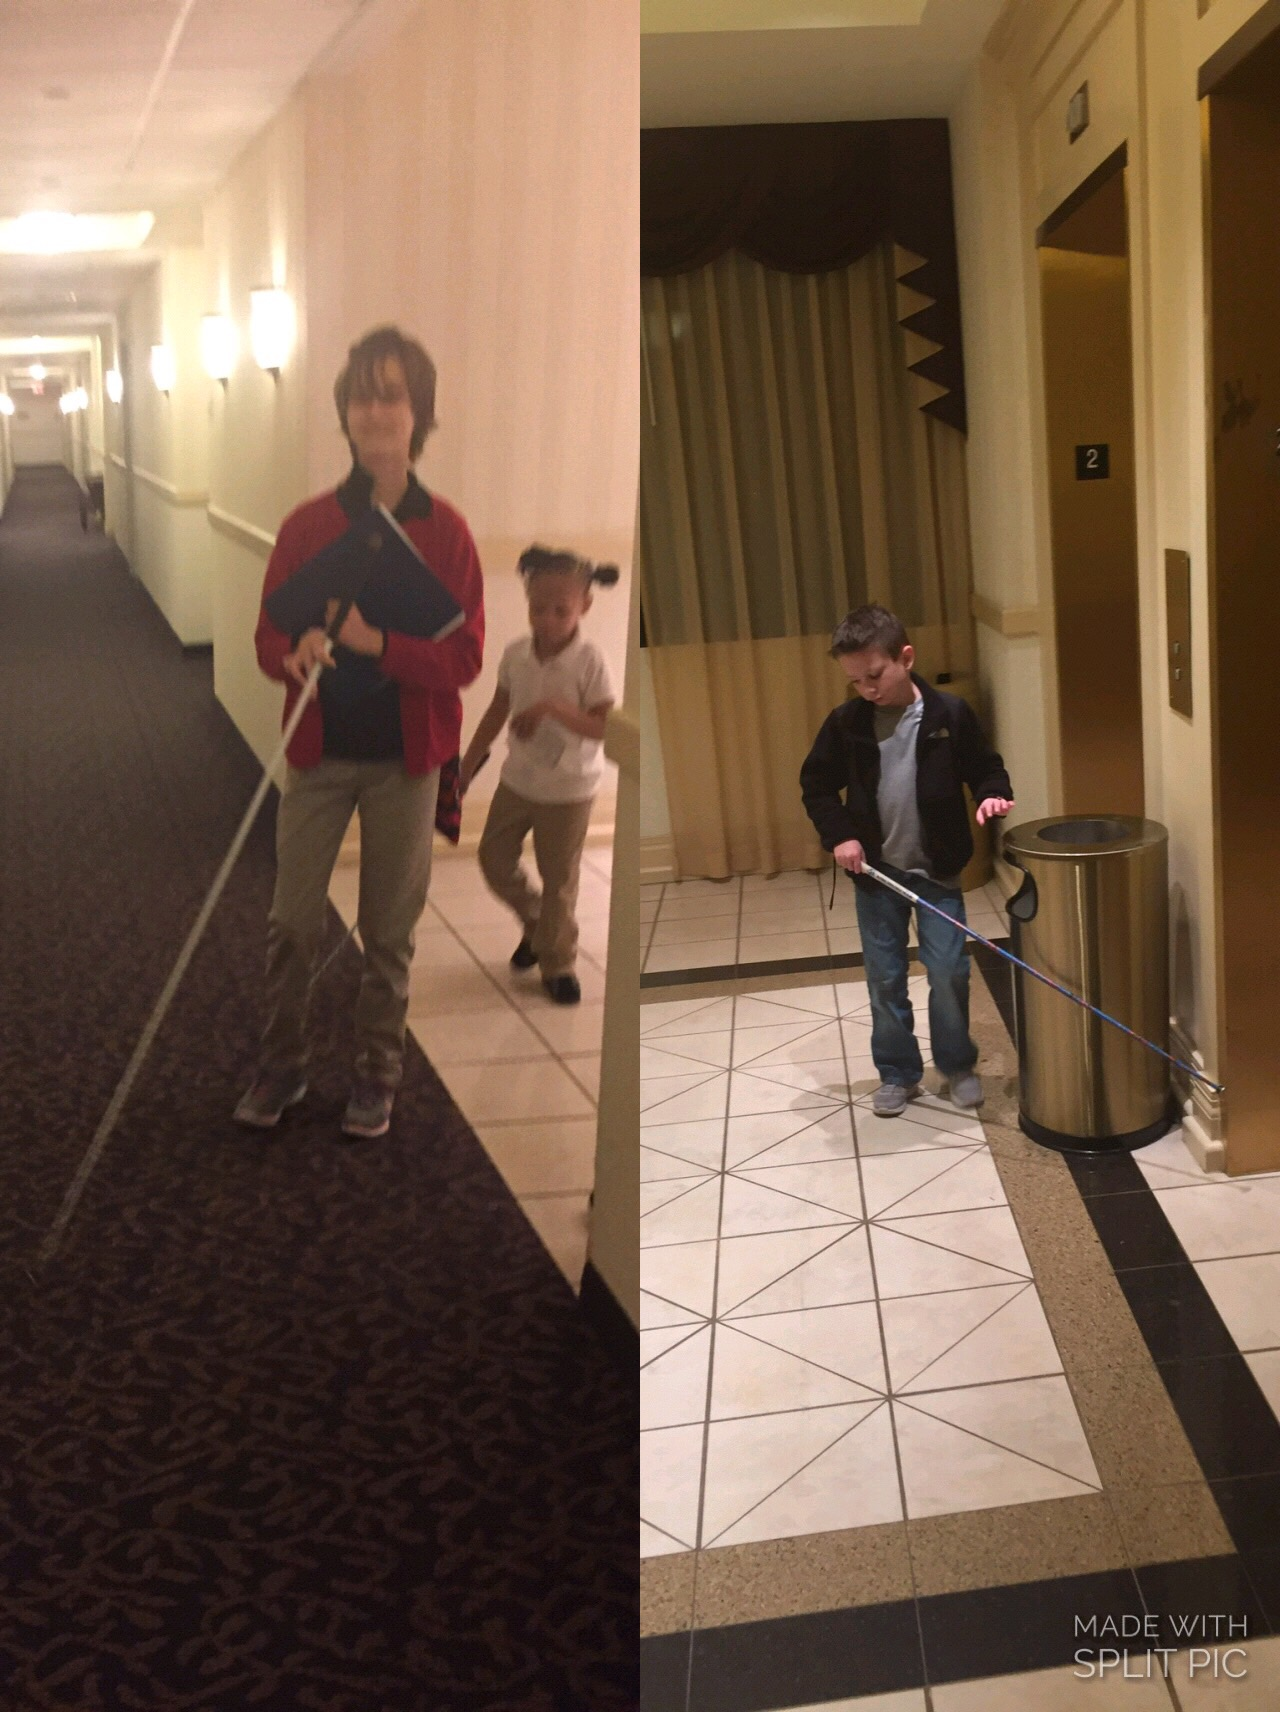 Picture shows a split screen. On the left: Lindsay leads Passion in find the girls' hotel room. On the right: Jordan uses his O&M skills to locate the elevator.